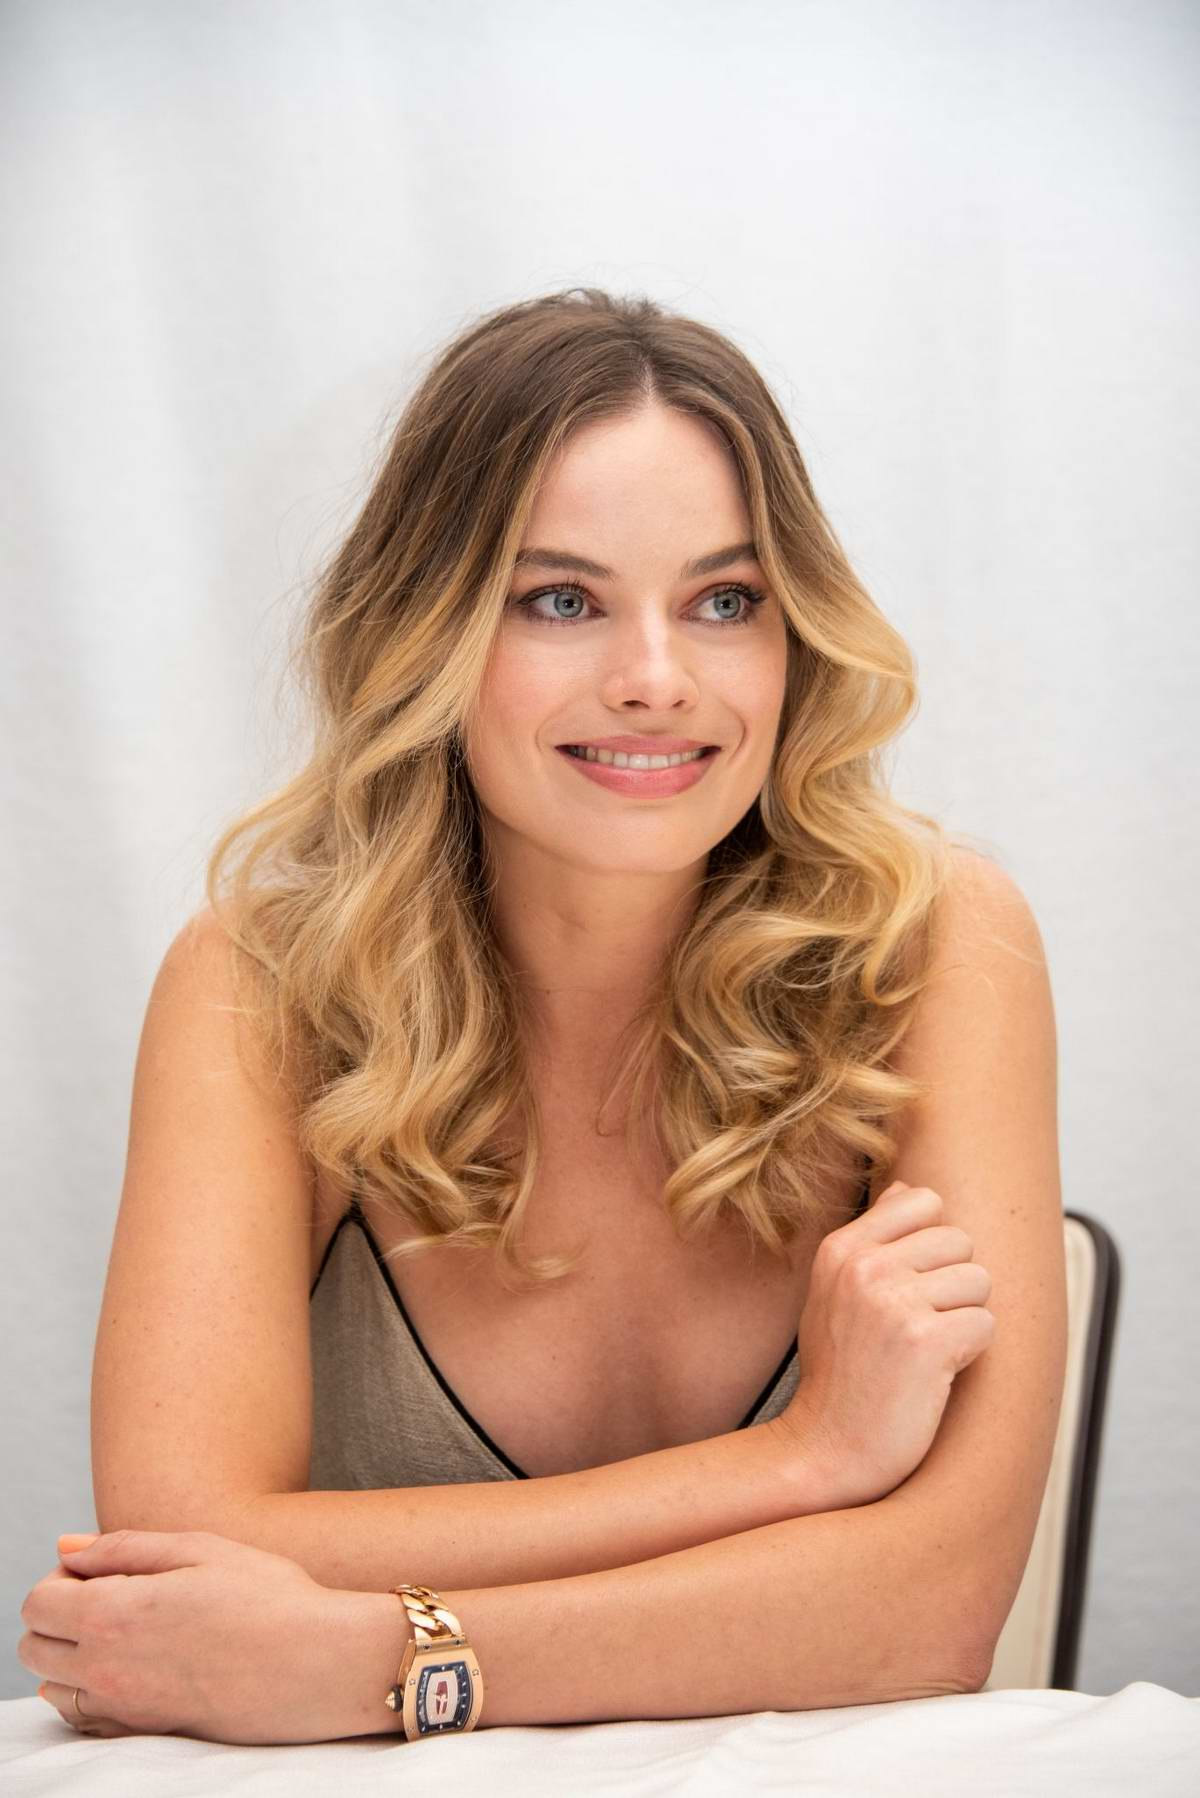 Margot Robbie attends the 'Once Upon A Time In Hollywood' Press Conference at the Four Seasons Hotel in Beverly Hills, Los Angeles